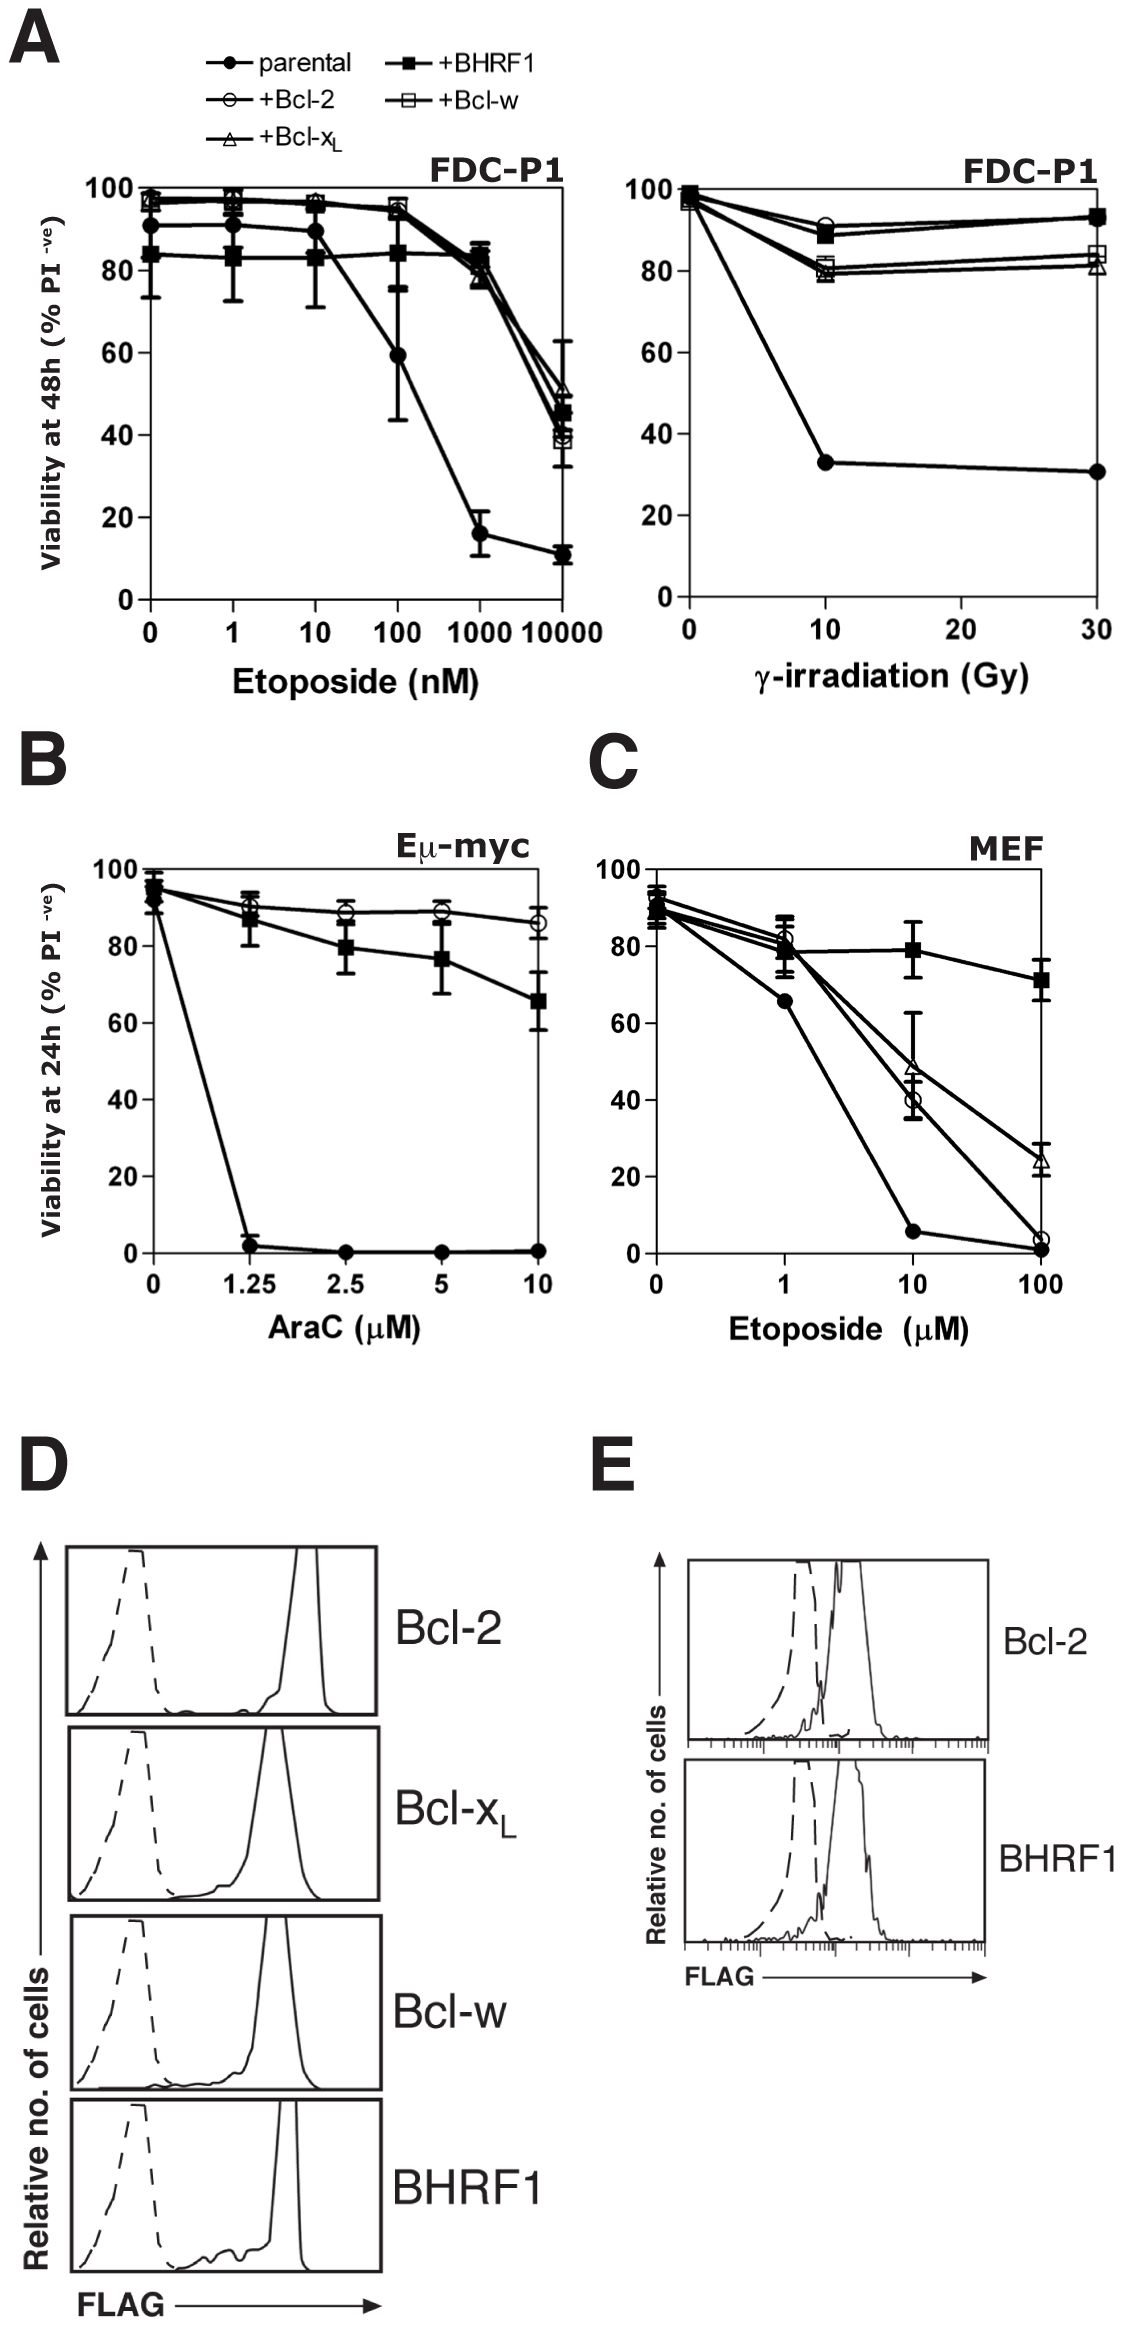 BHRF1 protects cells from diverse apoptotic stimuli.